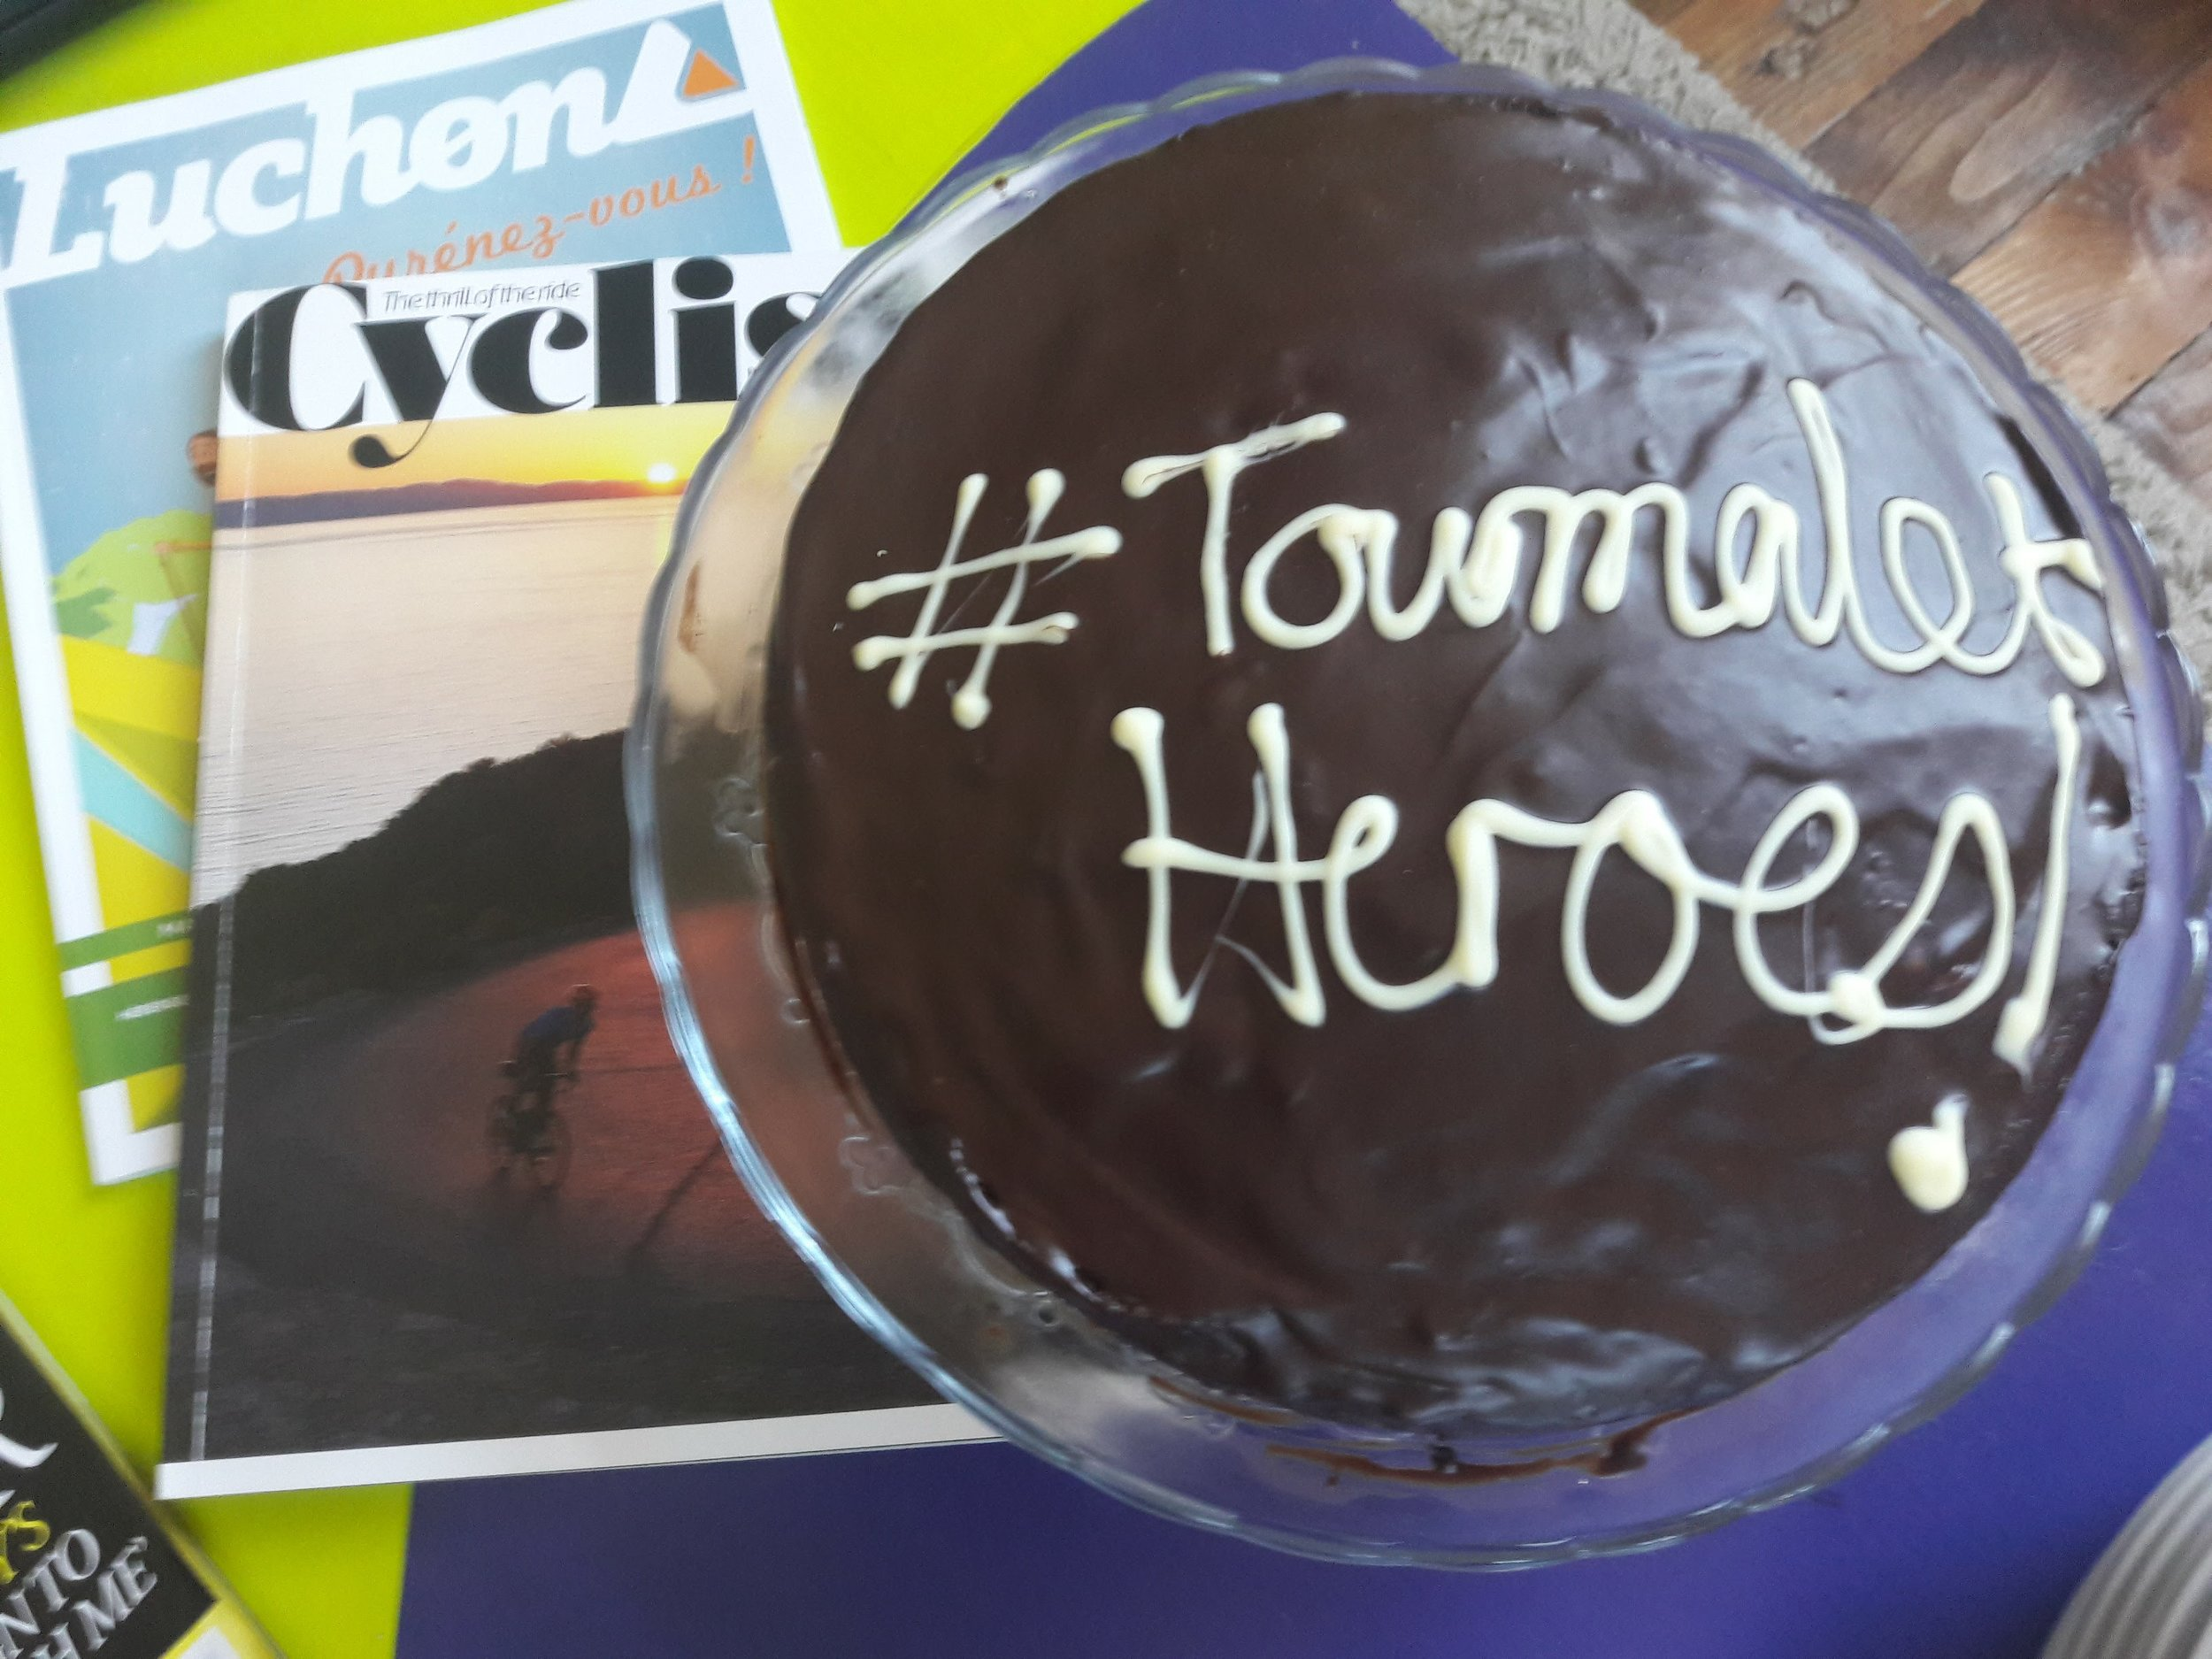 Cake to celebrate the conquering of one of the pyrenees giants - the Col du Tourmalet